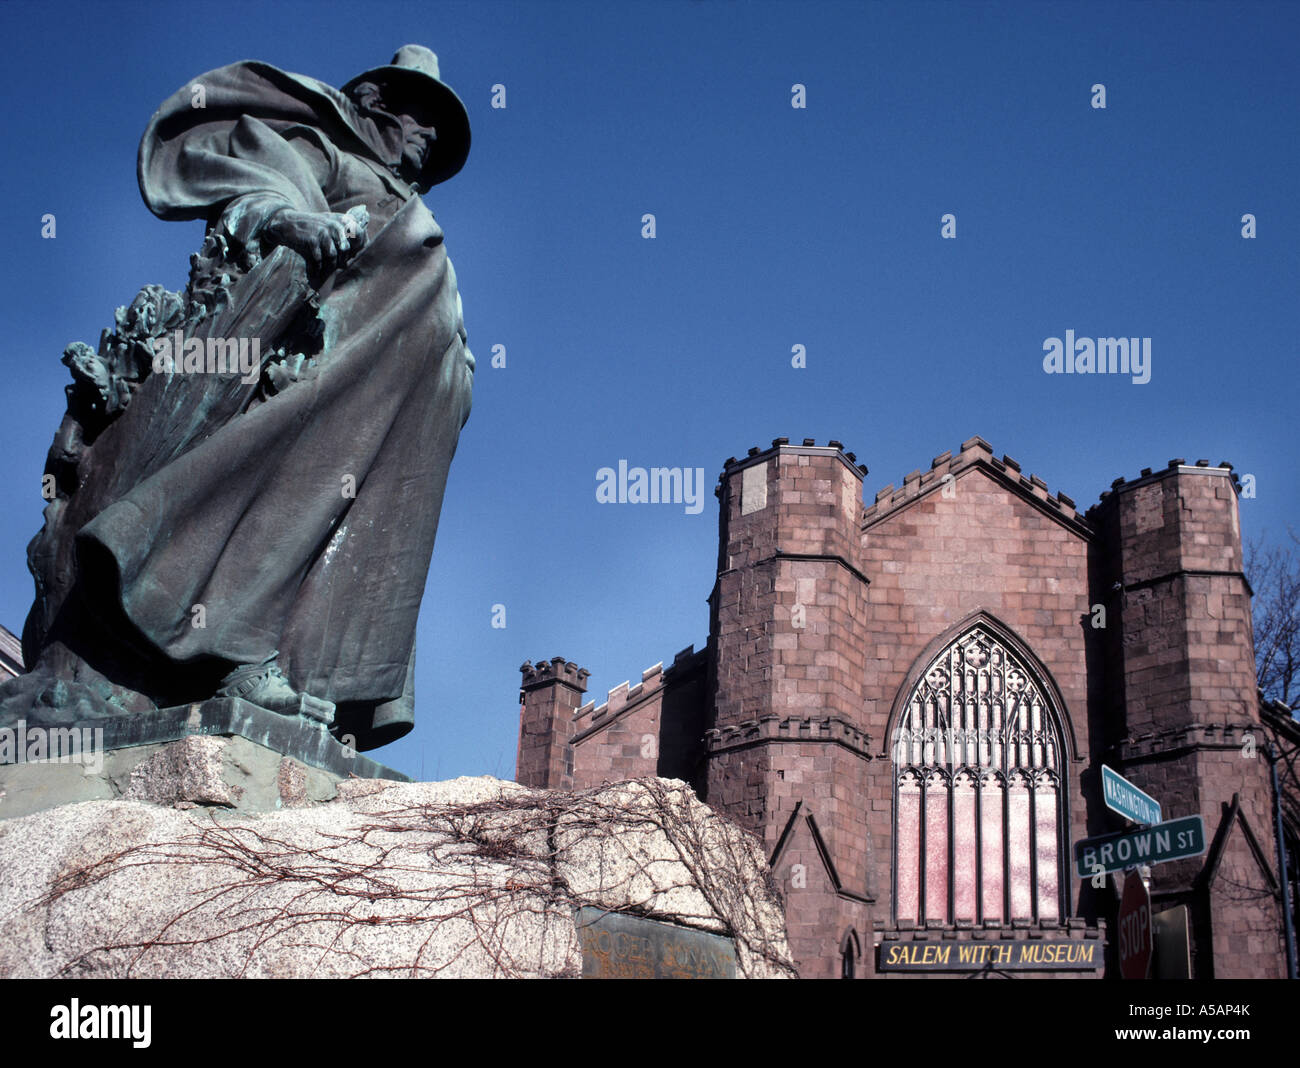 Statue von Roger Conant Salem Witch Museum Salem Massachusetts Stockbild